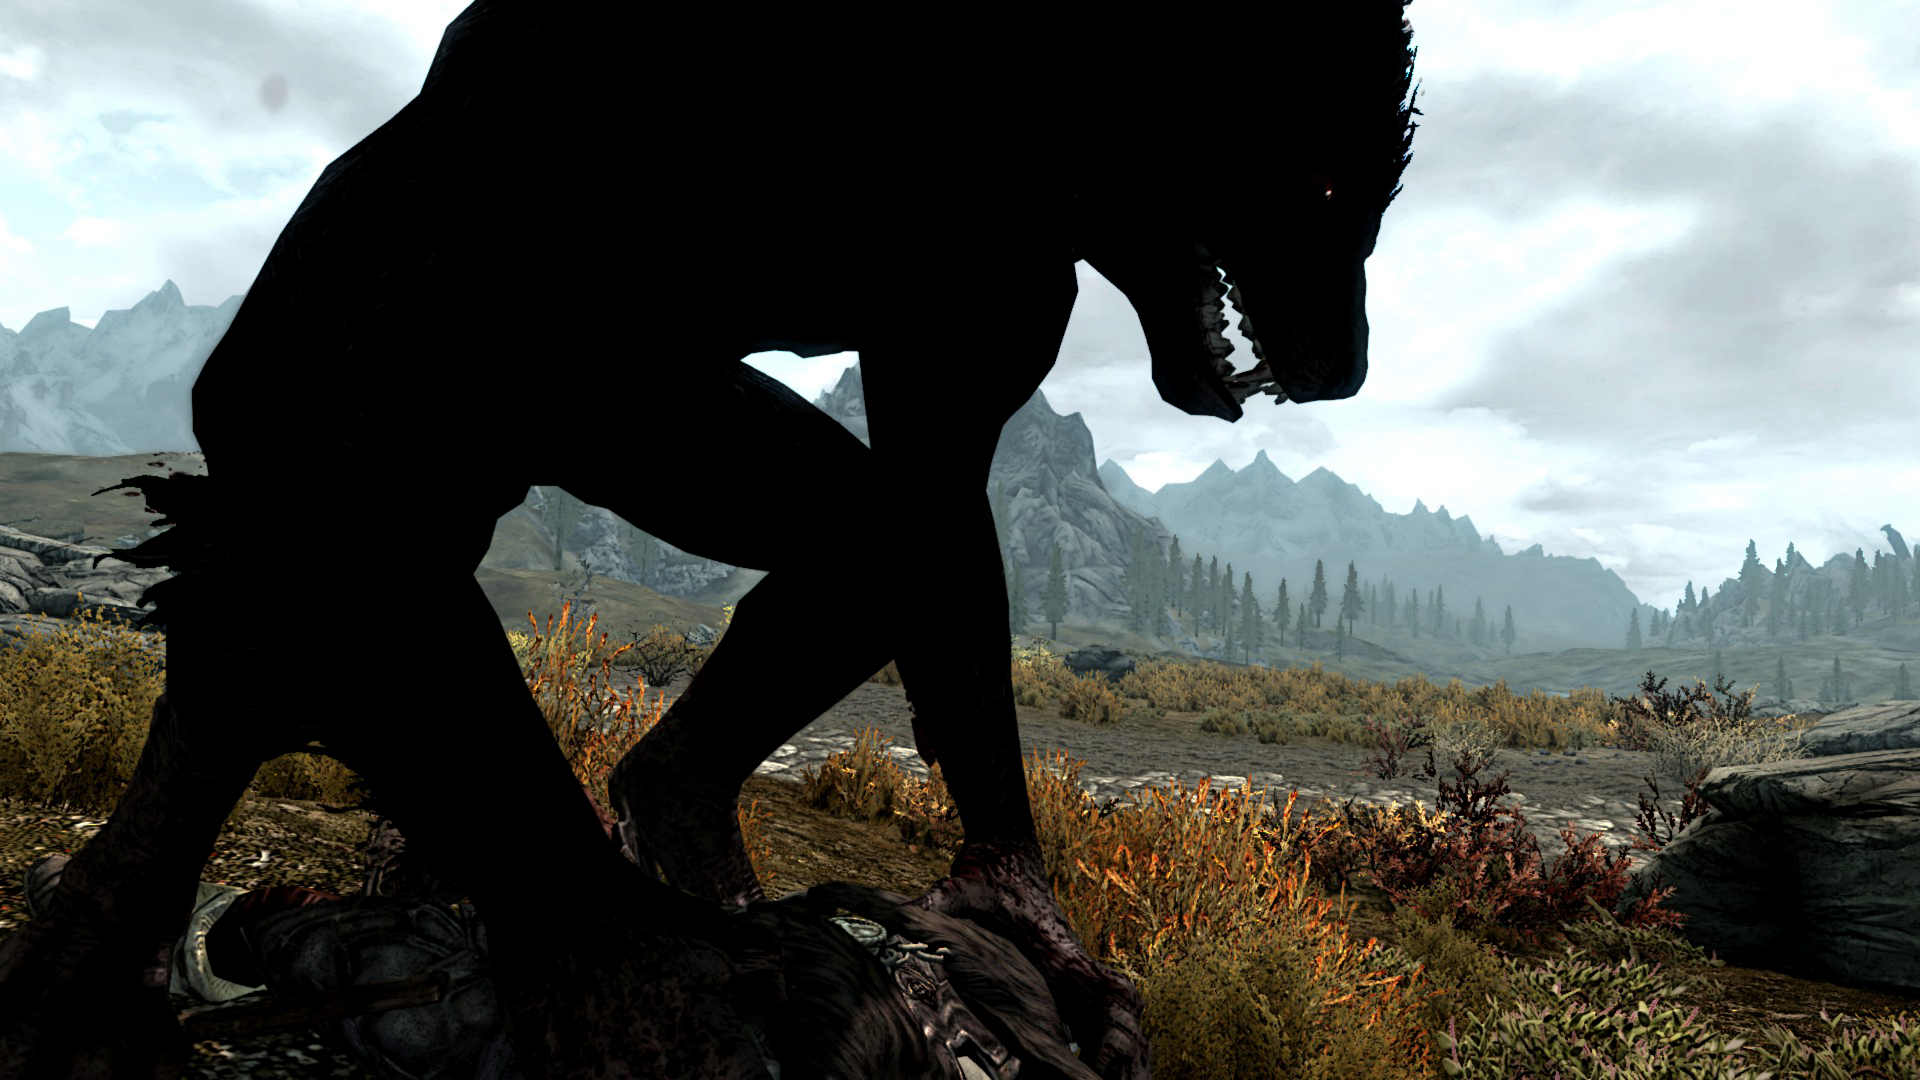 Skyrim werewolf wallpaper hd - photo#13